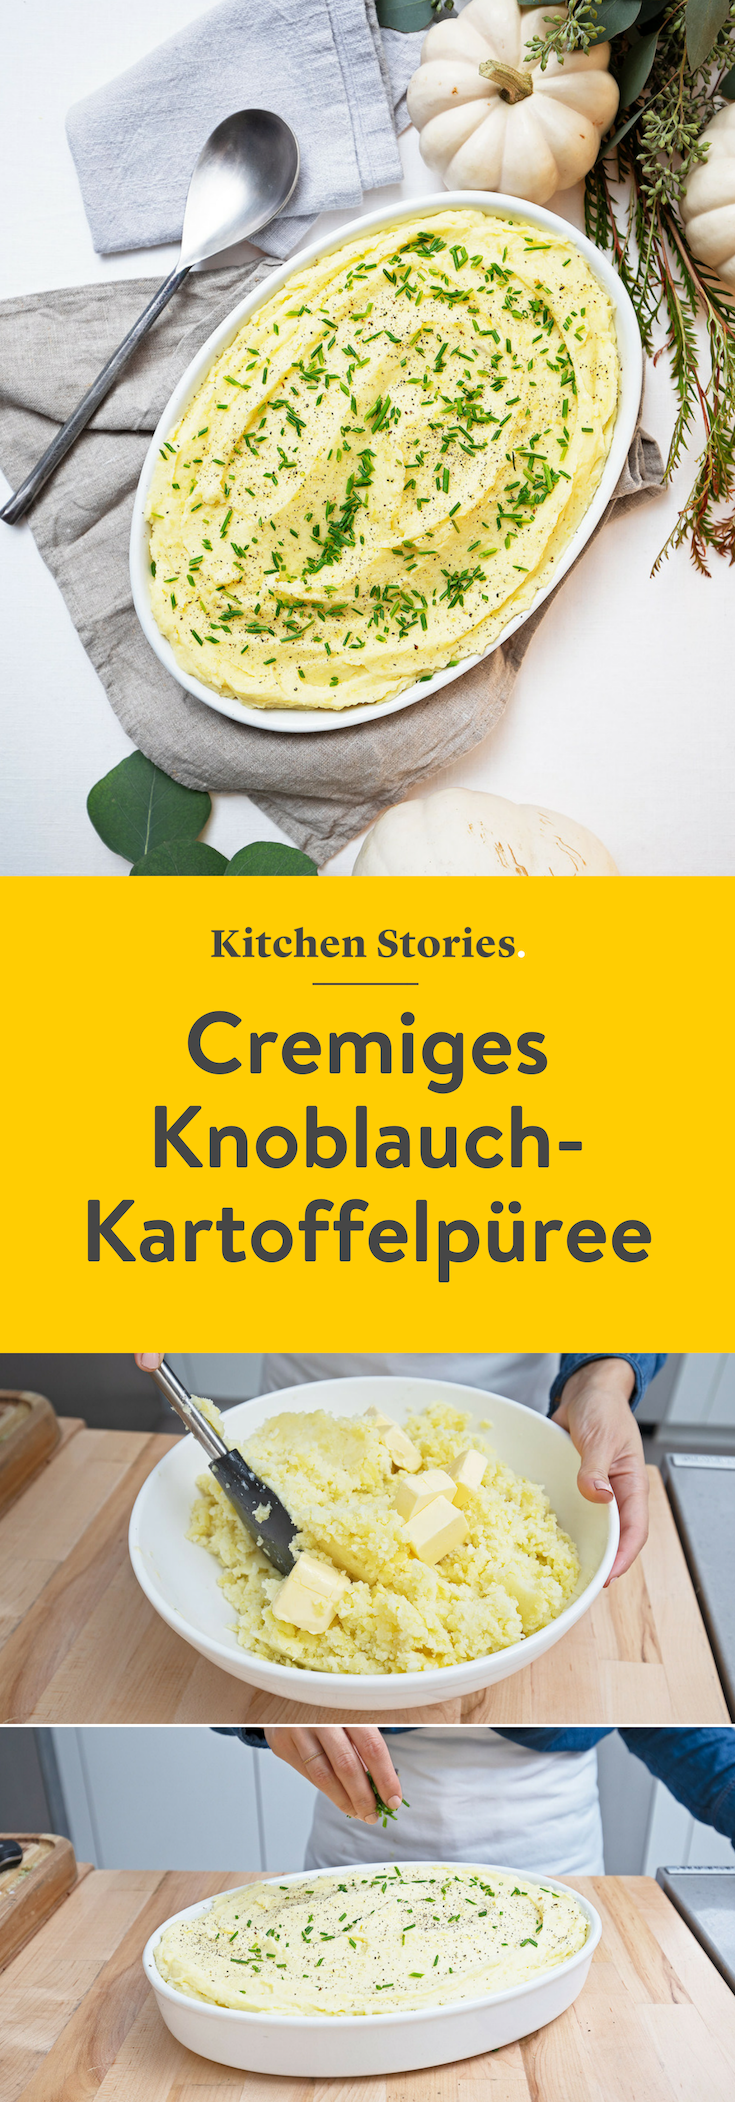 Cremiges Knoblauch-Kartoffelpüree | Rezept | Kitchen Stories